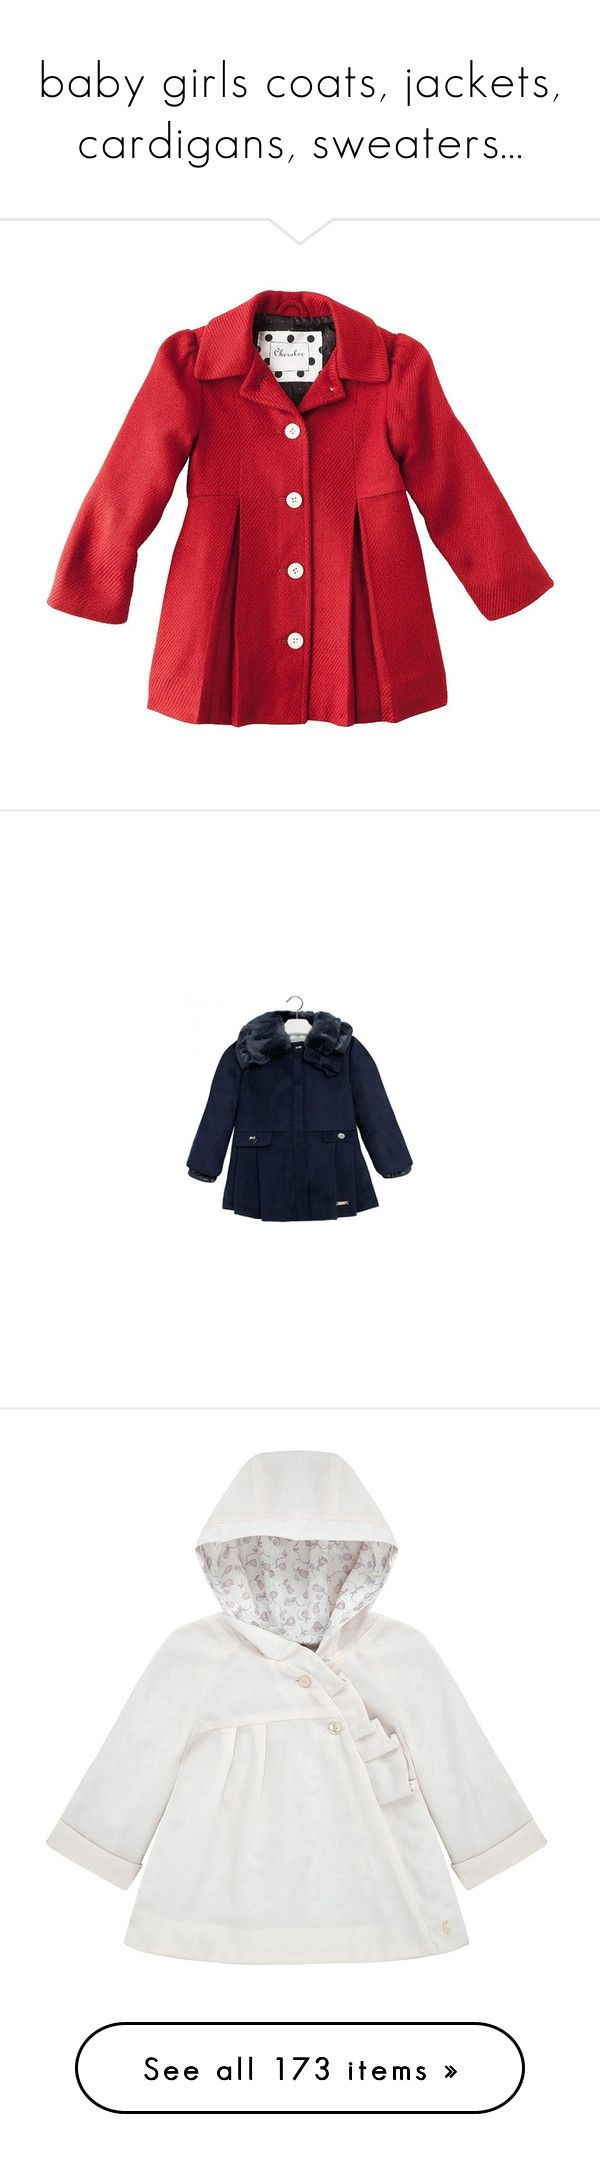 """""""baby girls coats, jackets, cardigans, sweaters..."""" by stephaniedsmigo ❤ liked on Polyvore featuring baby, kids, baby clothes, baby girl clothes, girls, outerwear, jackets, white jacket, corduroy jacket and christian dior jacket"""